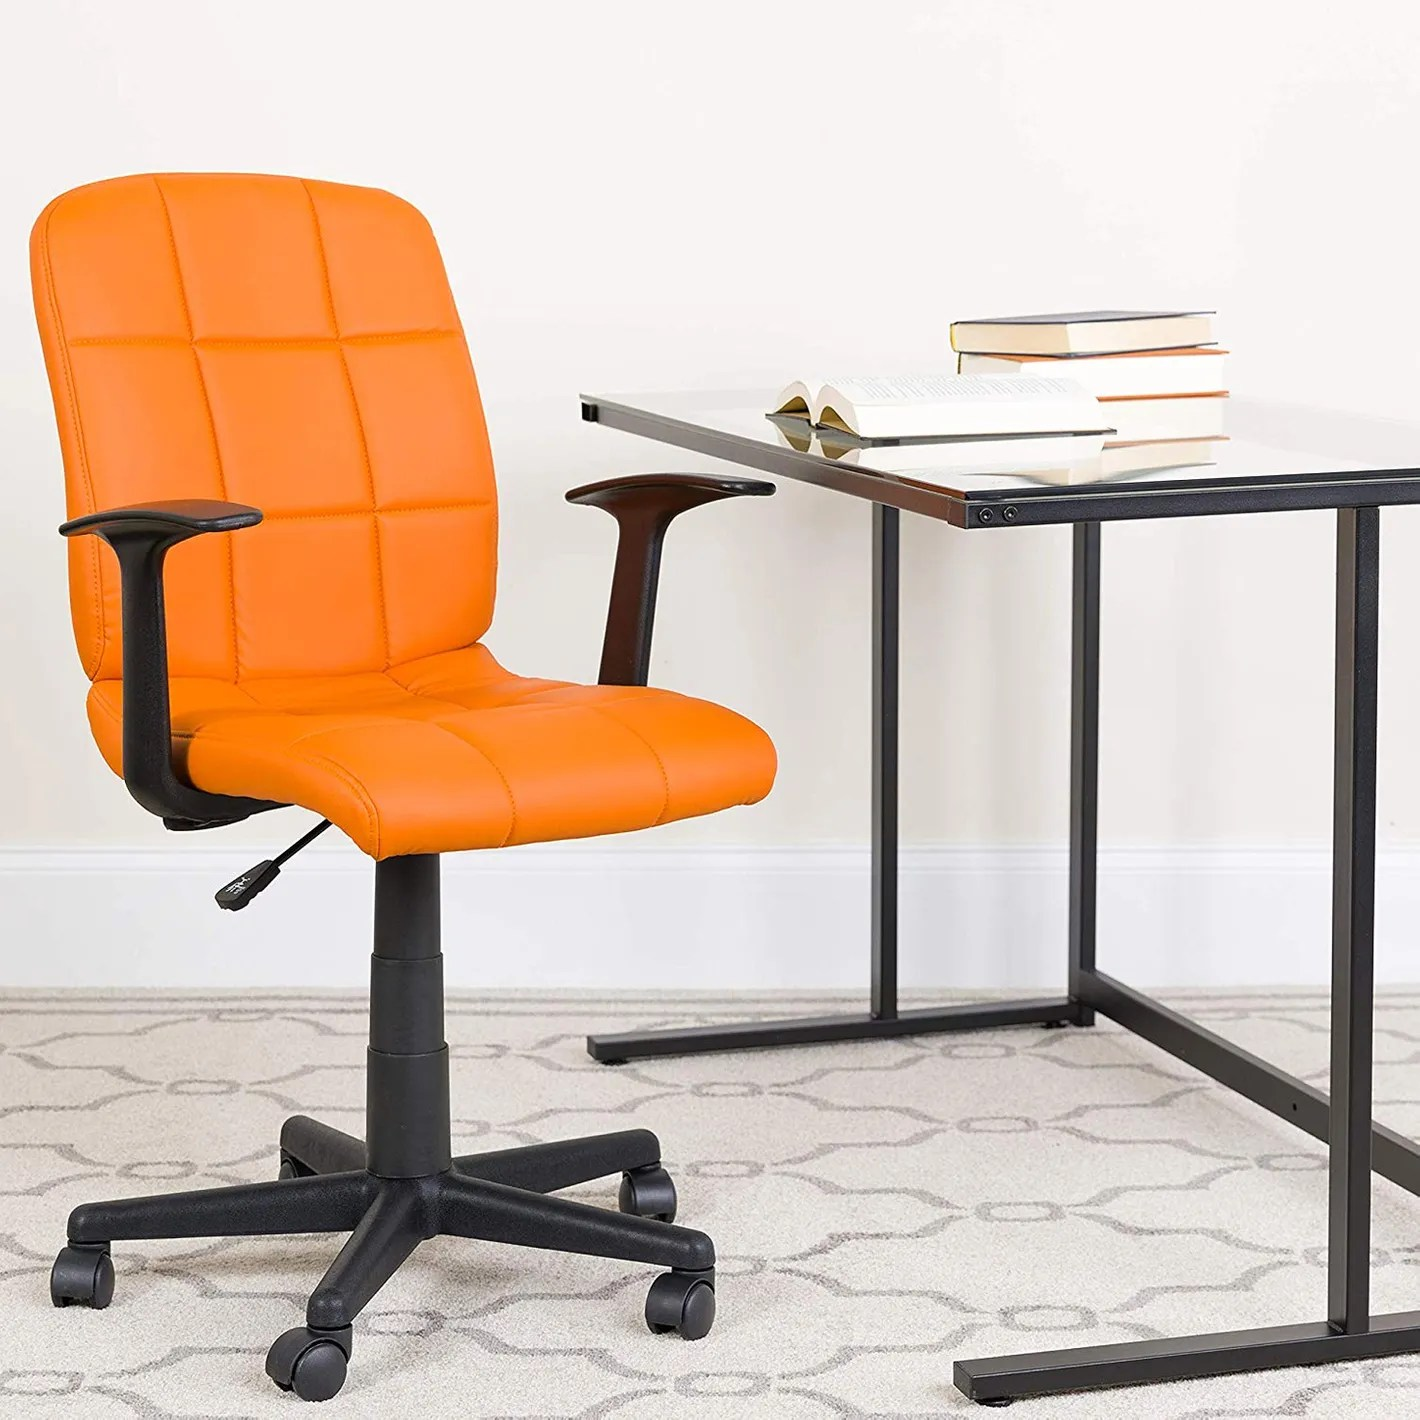 Minimalist Desk Chair 19 Best Office Chairs And Home Office Chairs 2019